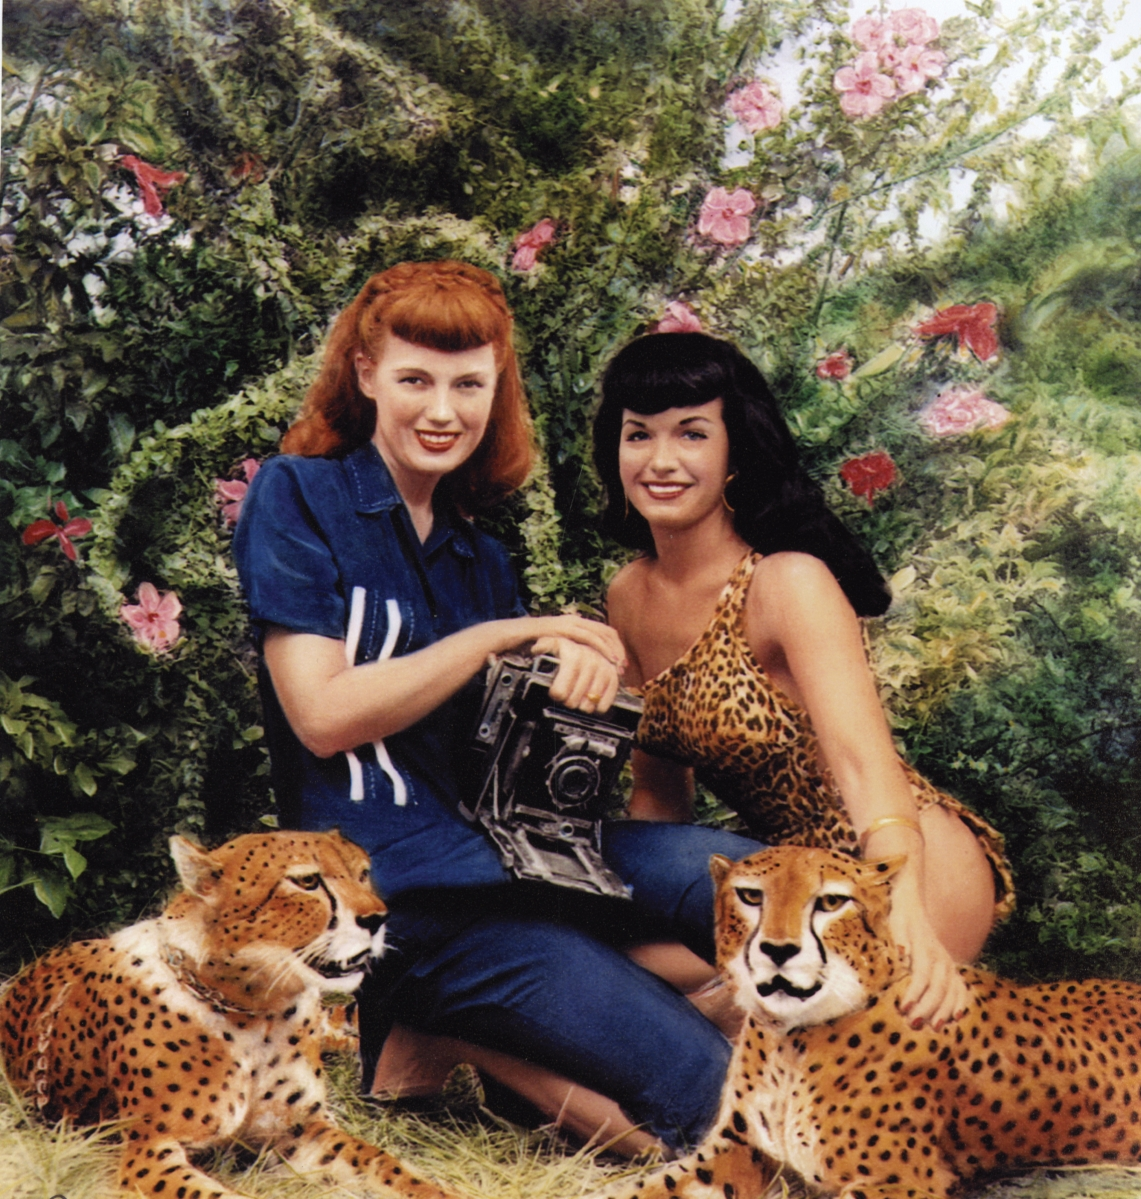 Bettie Page bunny yeager cheetah jungle land _p001